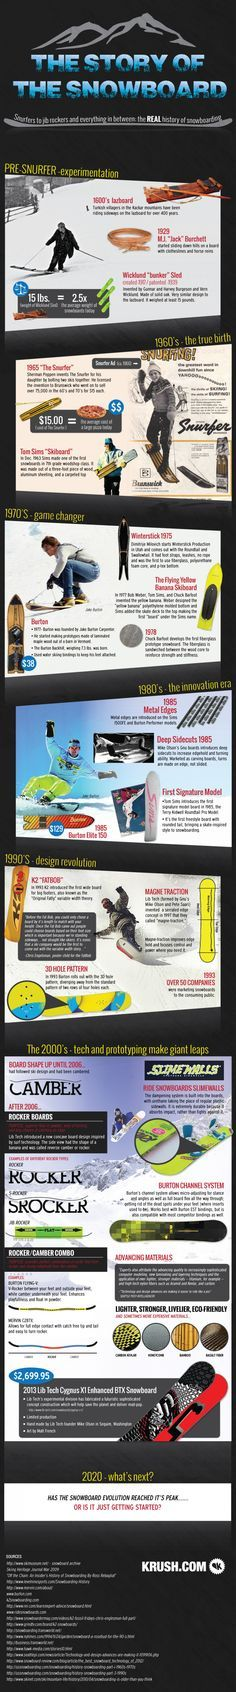 The History of Snowboarding | Visual.ly more snowboarding tips @ https://www.facebook.com/Snowboard-Equipment-174997816033563